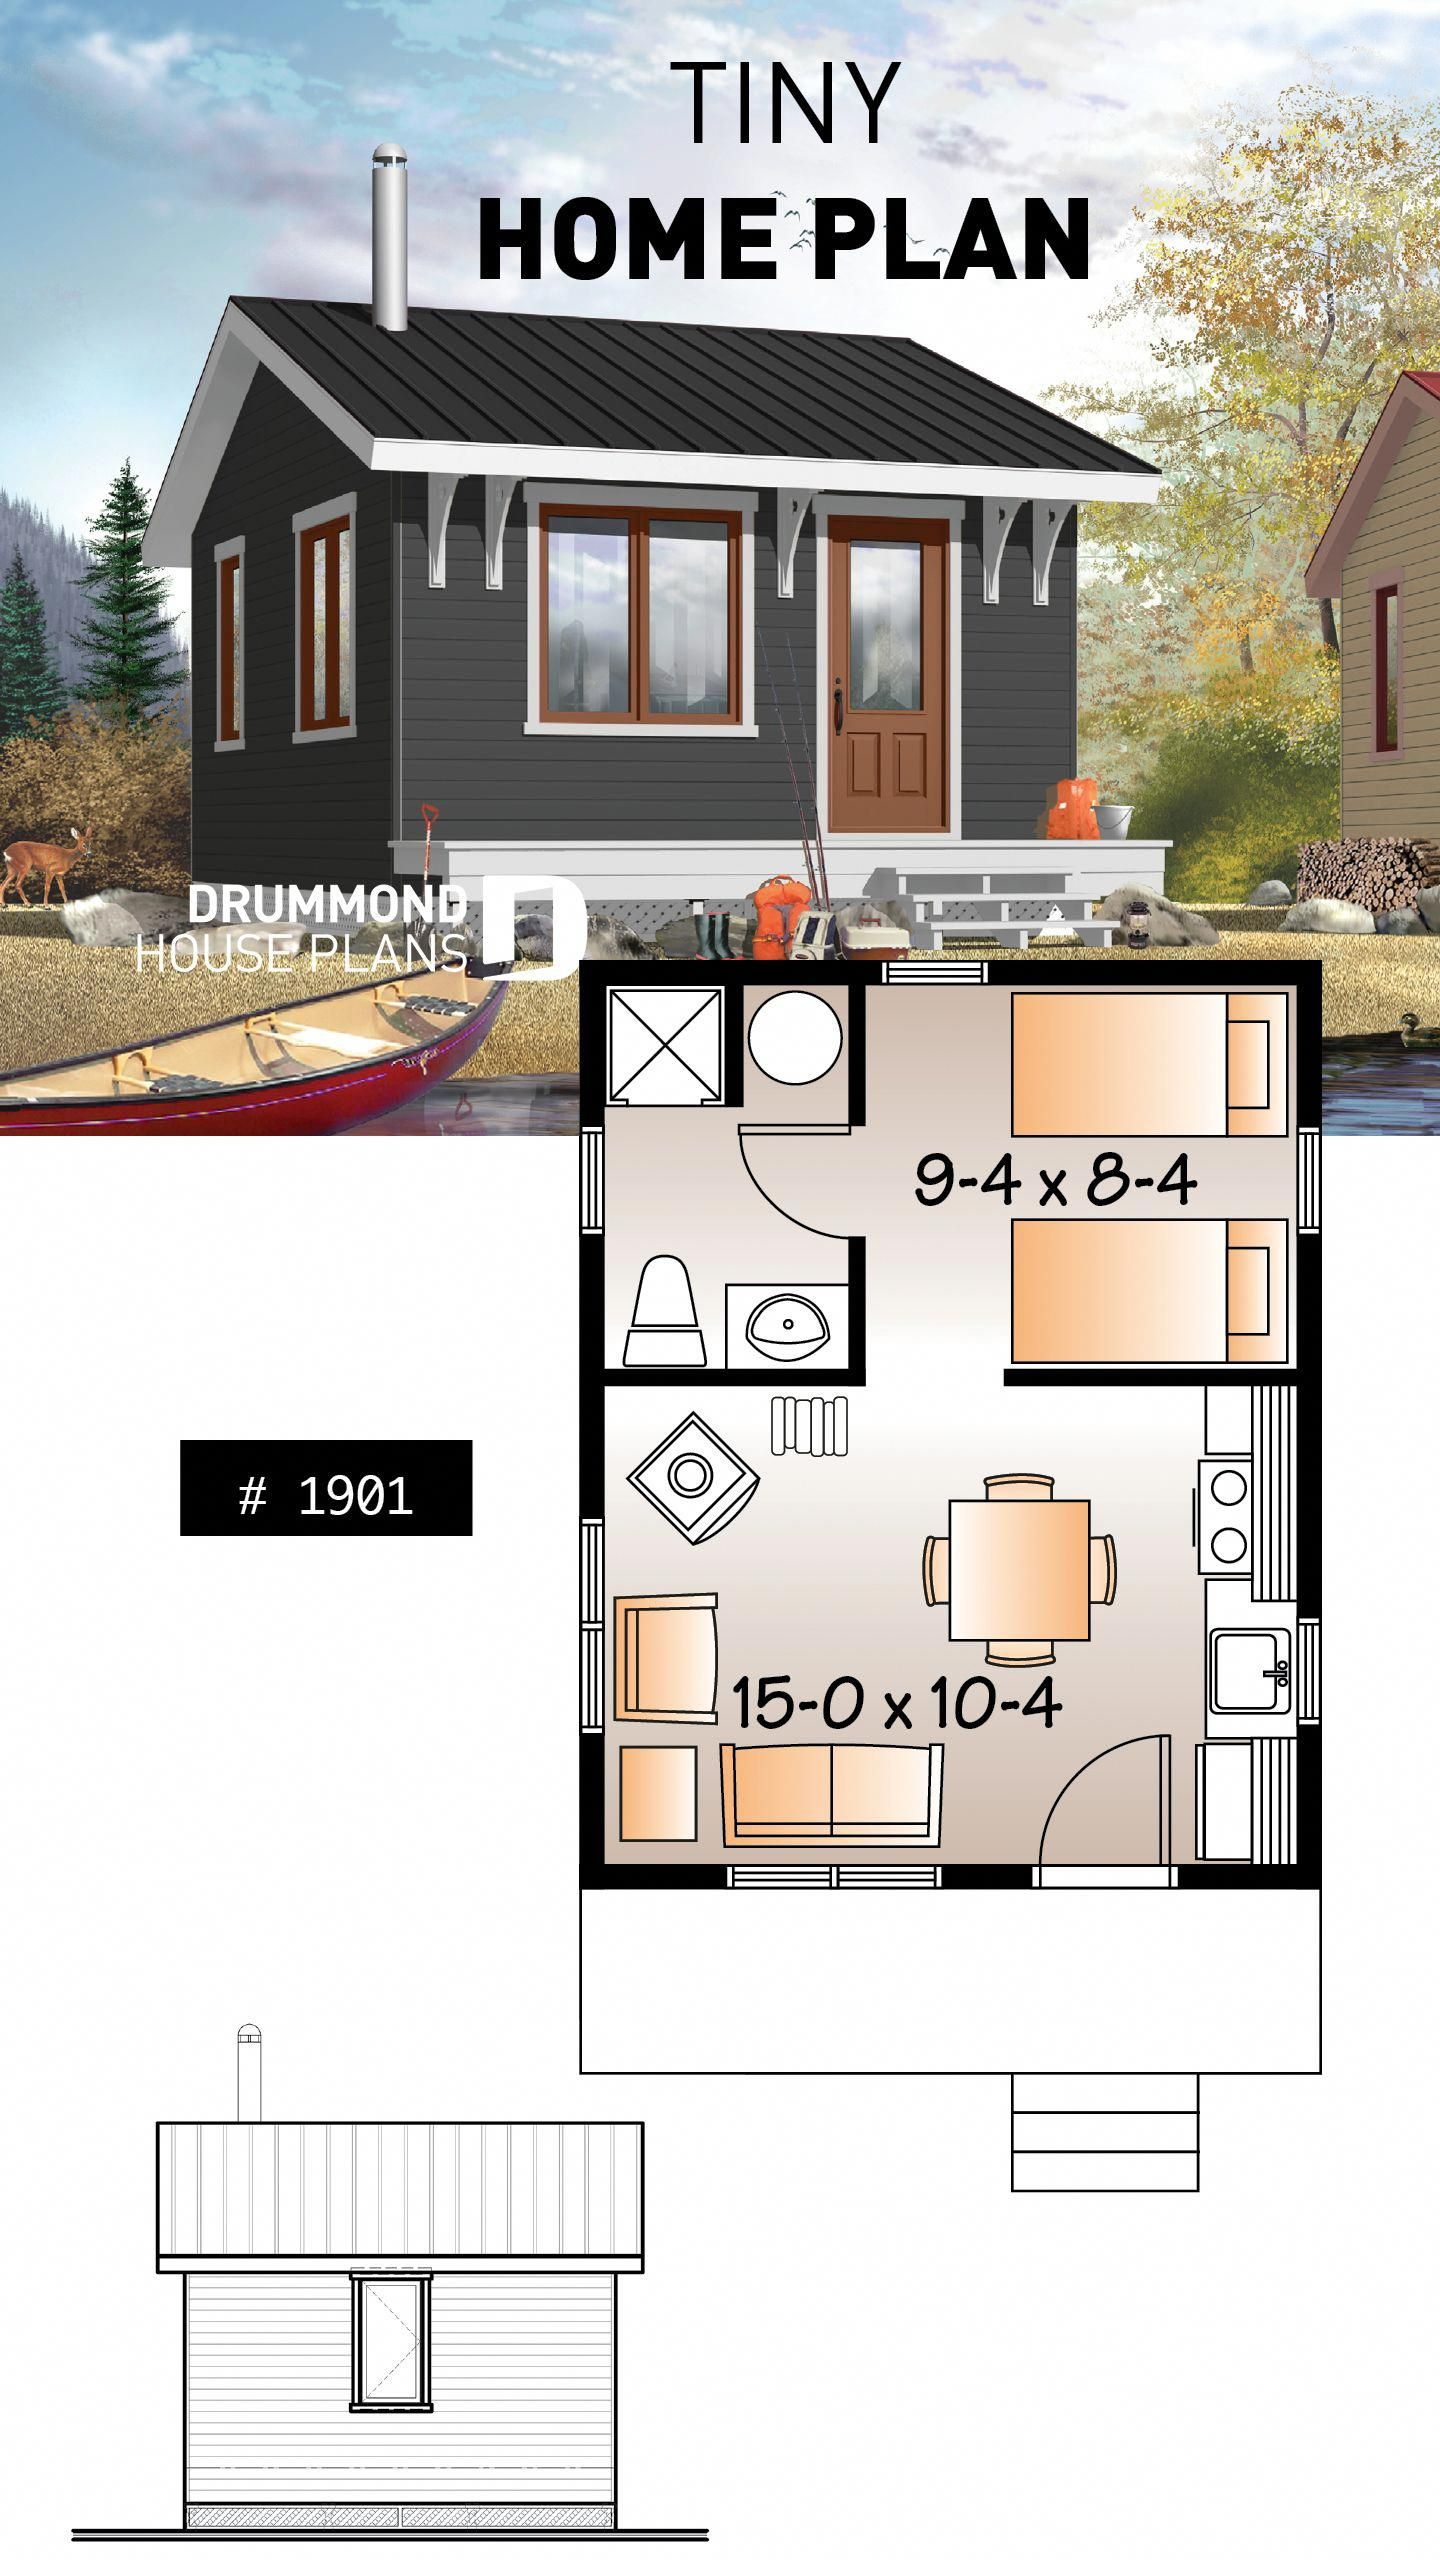 Small 1 Bedroom Cabin Plan 1 Shower Room Options For 3 Or 4 Season Included Wood Stove Kitchenpla Tiny House Cabin Tiny House Floor Plans Small Cabin Plans